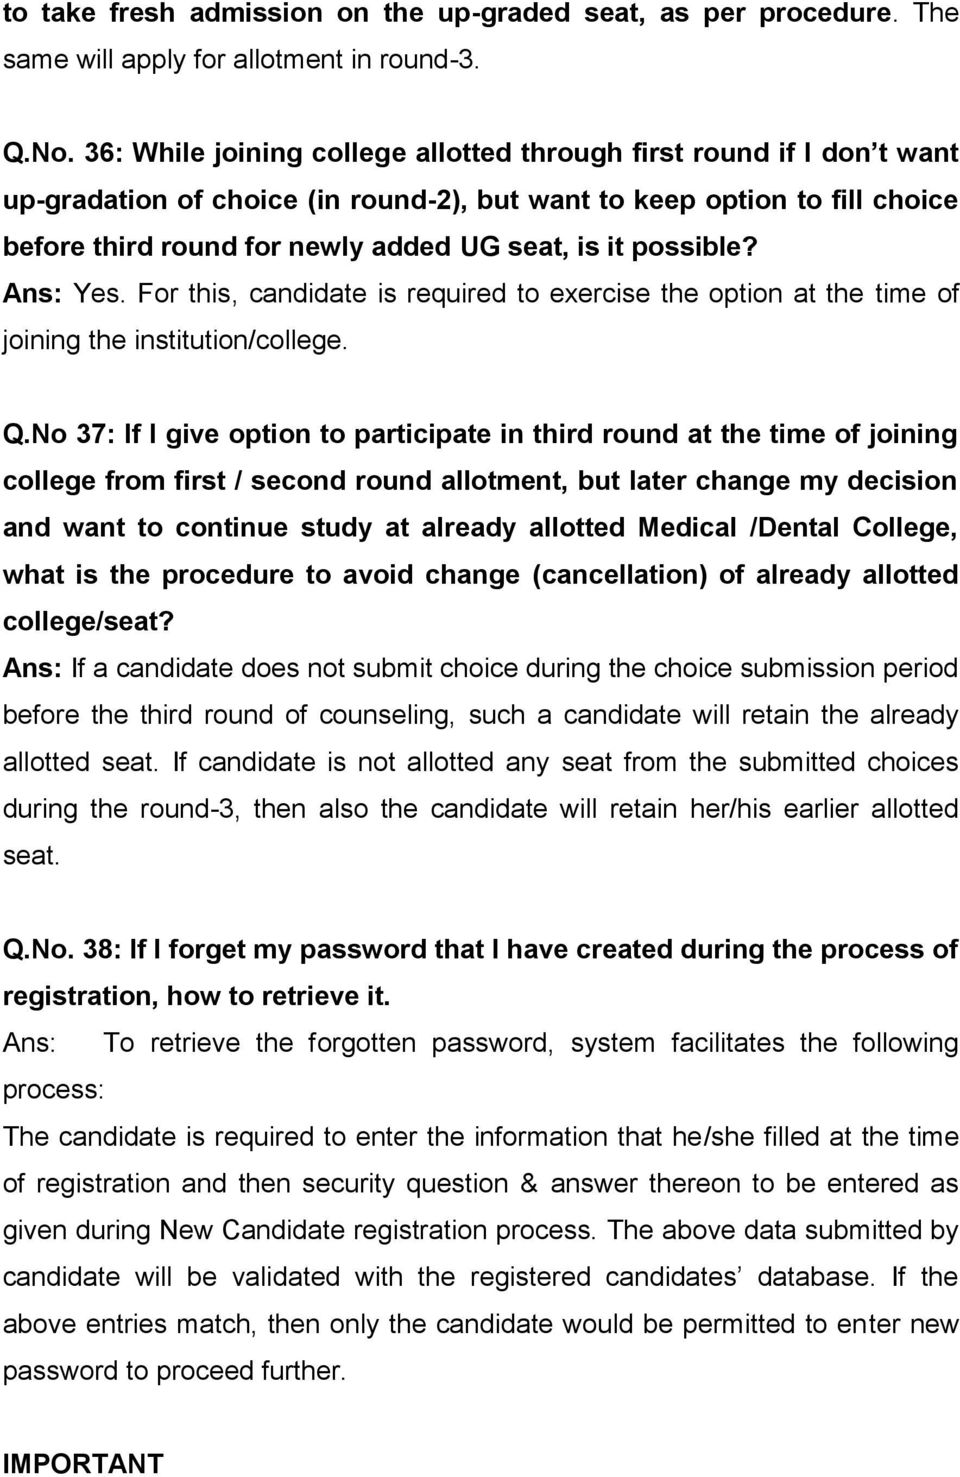 possible? Ans: Yes. For this, candidate is required to exercise the option at the time of joining the institution/college. Q.